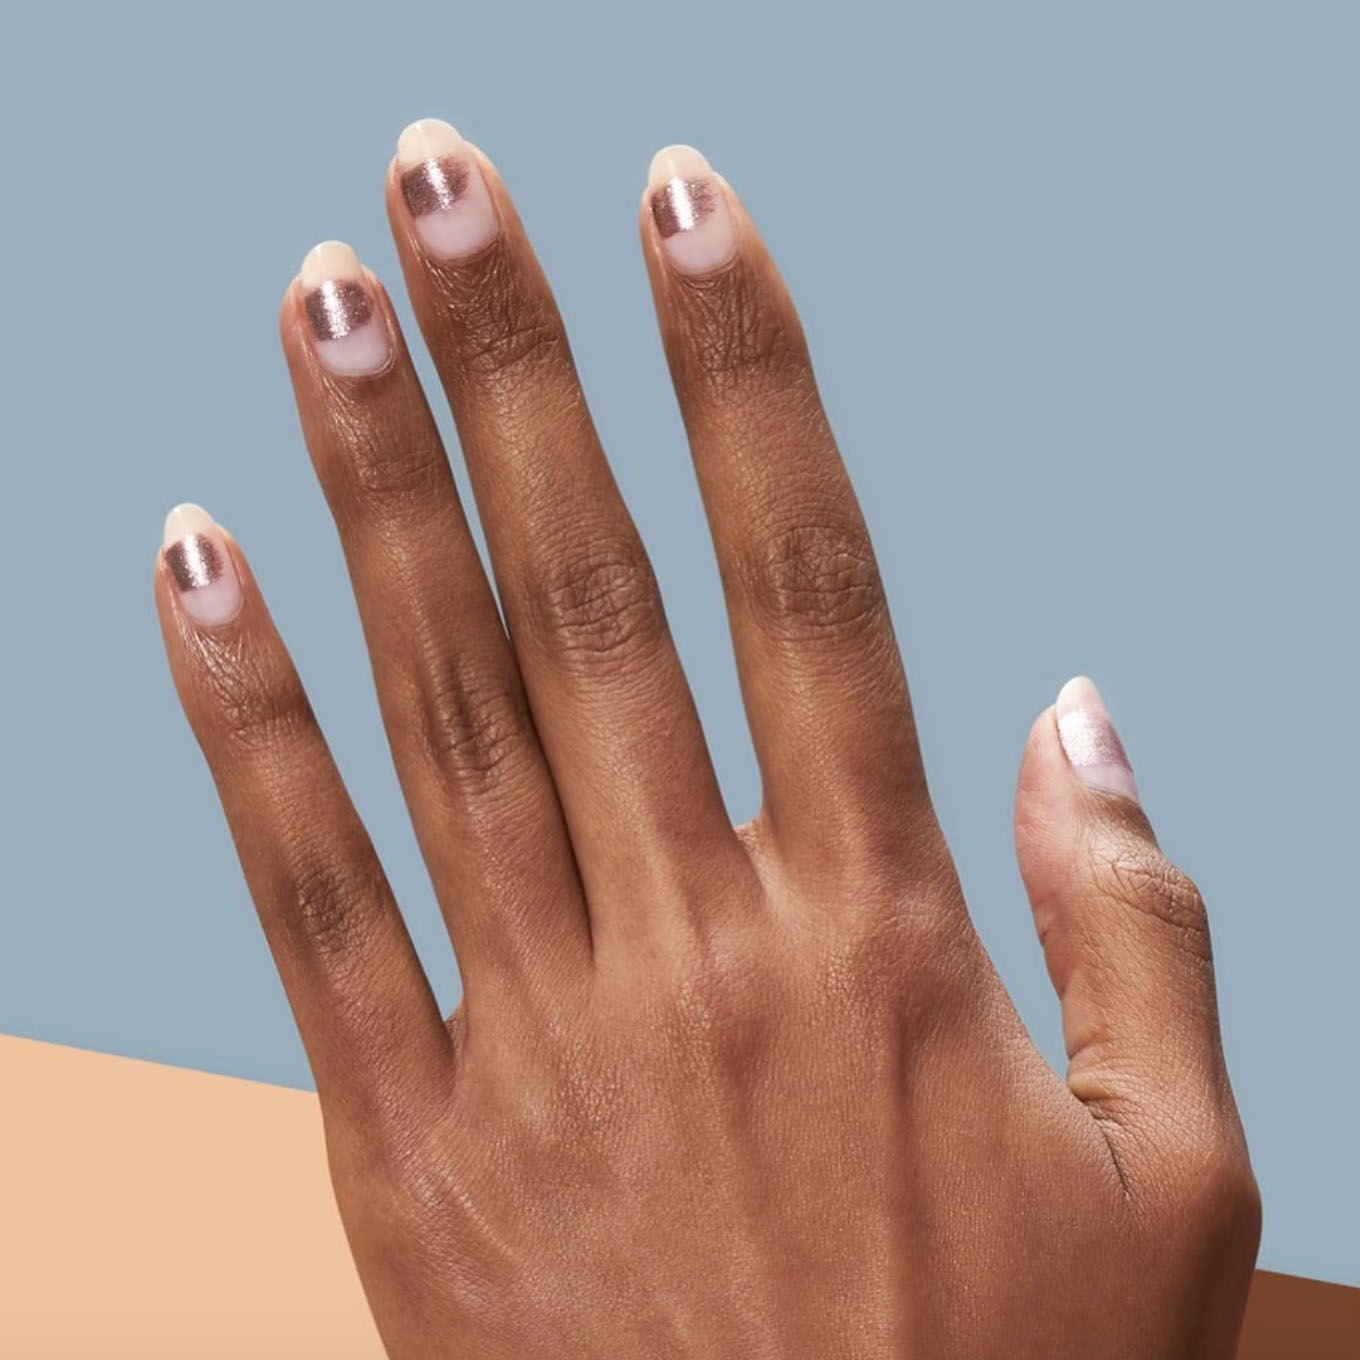 30 Nail Colors That Look Especially Amazing On Dark Skin Tones